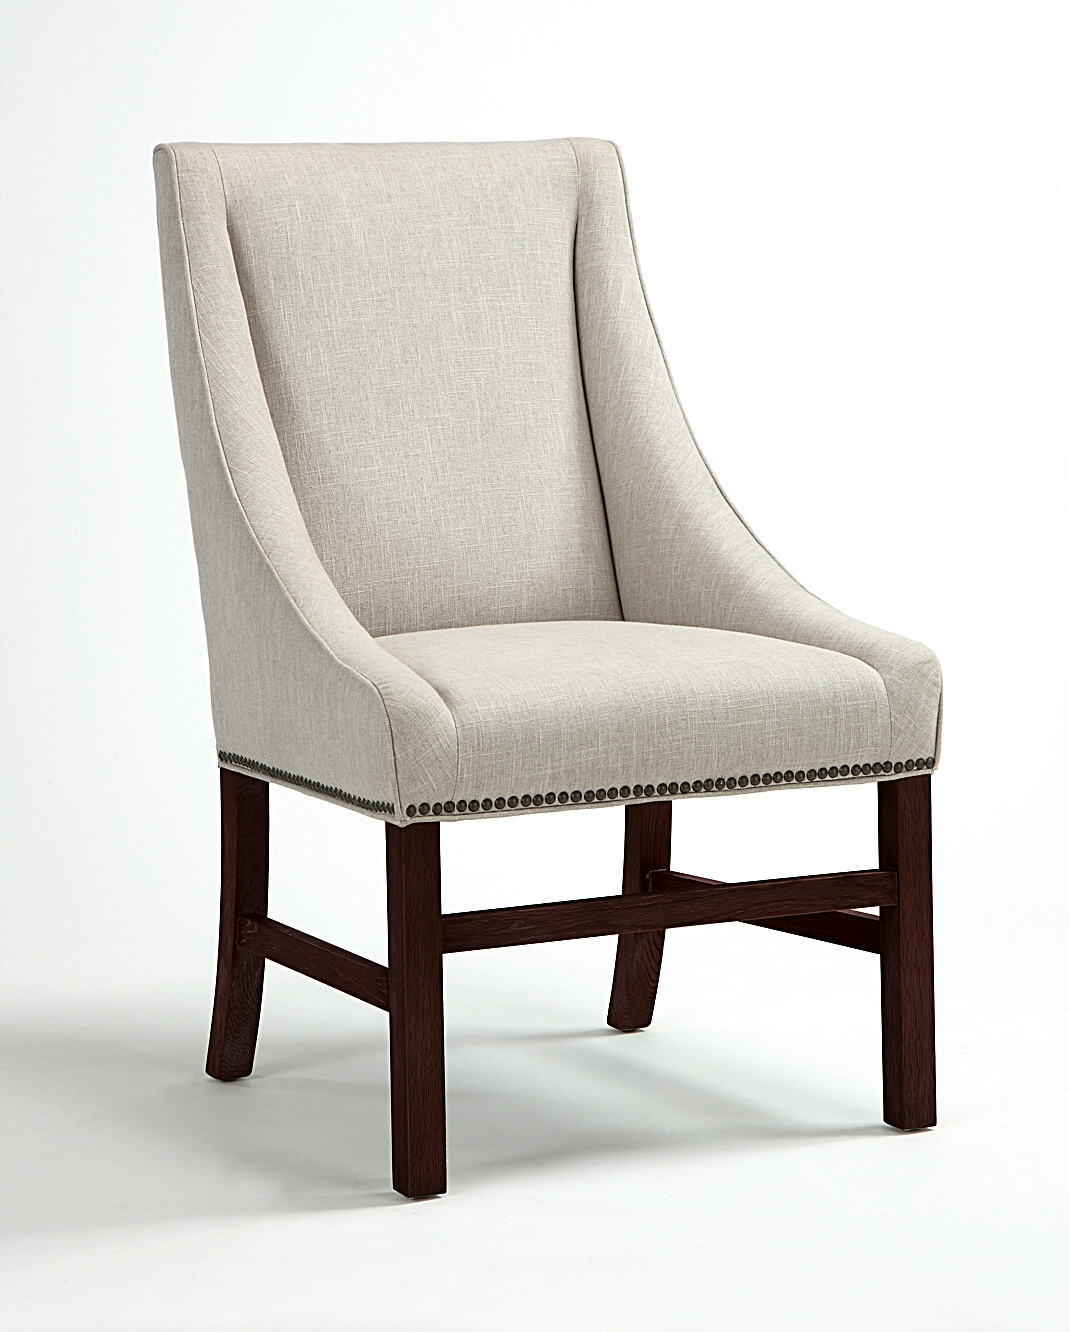 Best Upholstery Fabric For Dining Room Chairs: Dining Chair Fabric Upholstery